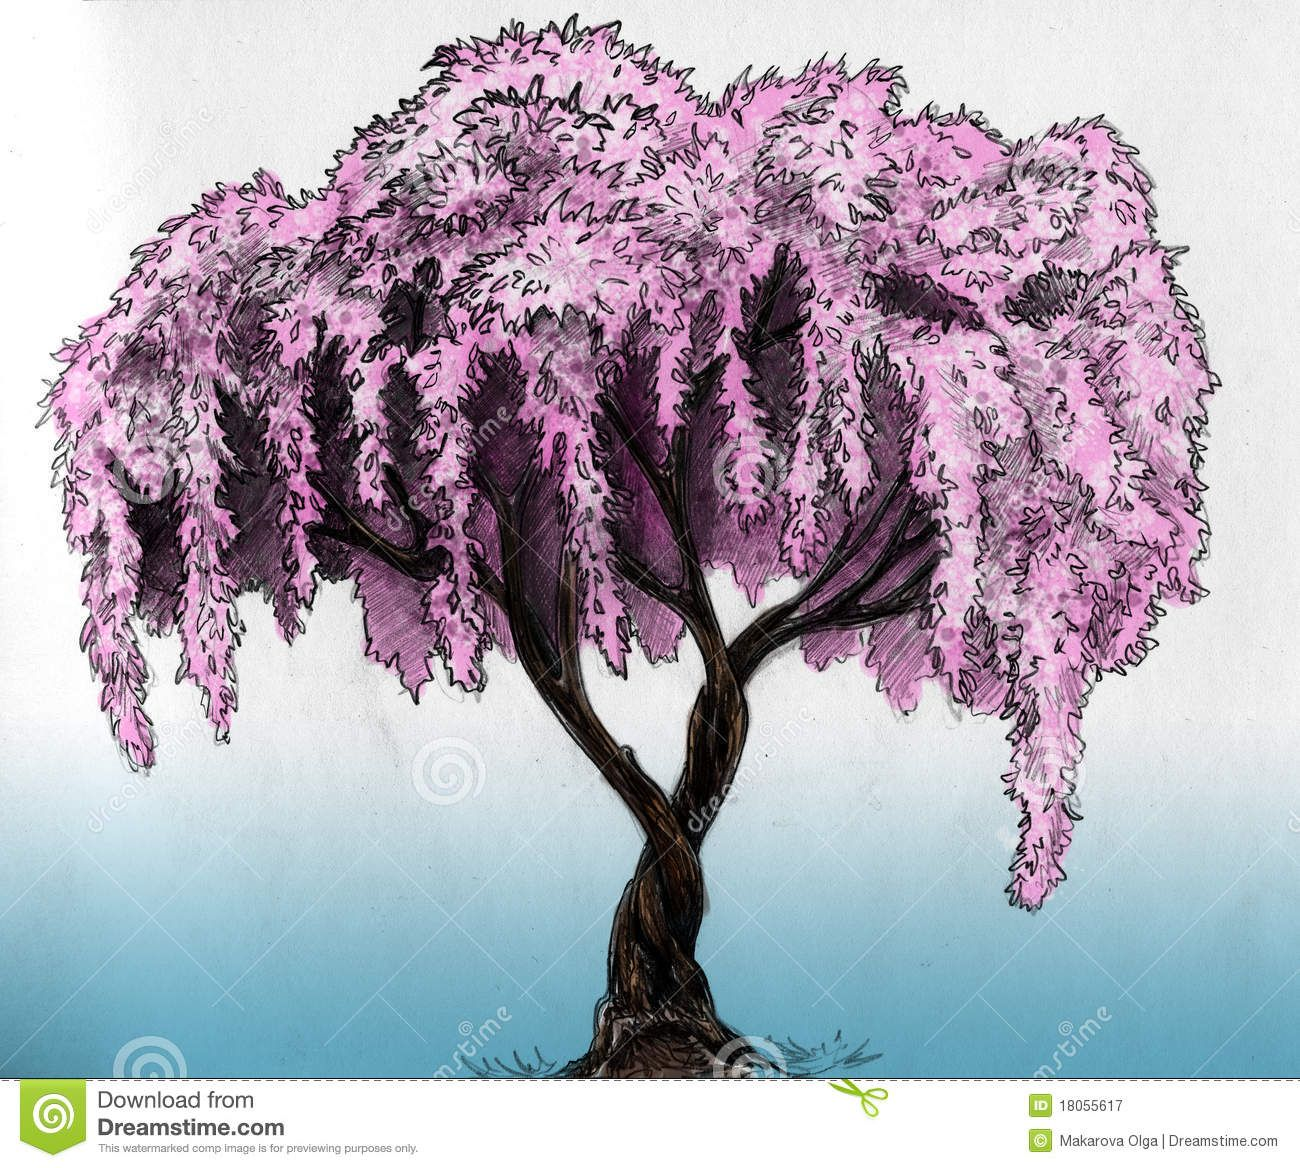 Uncategorized Cherry Blossom Tree Sketch sakura tree pencil sketch royalty free stock photography image image